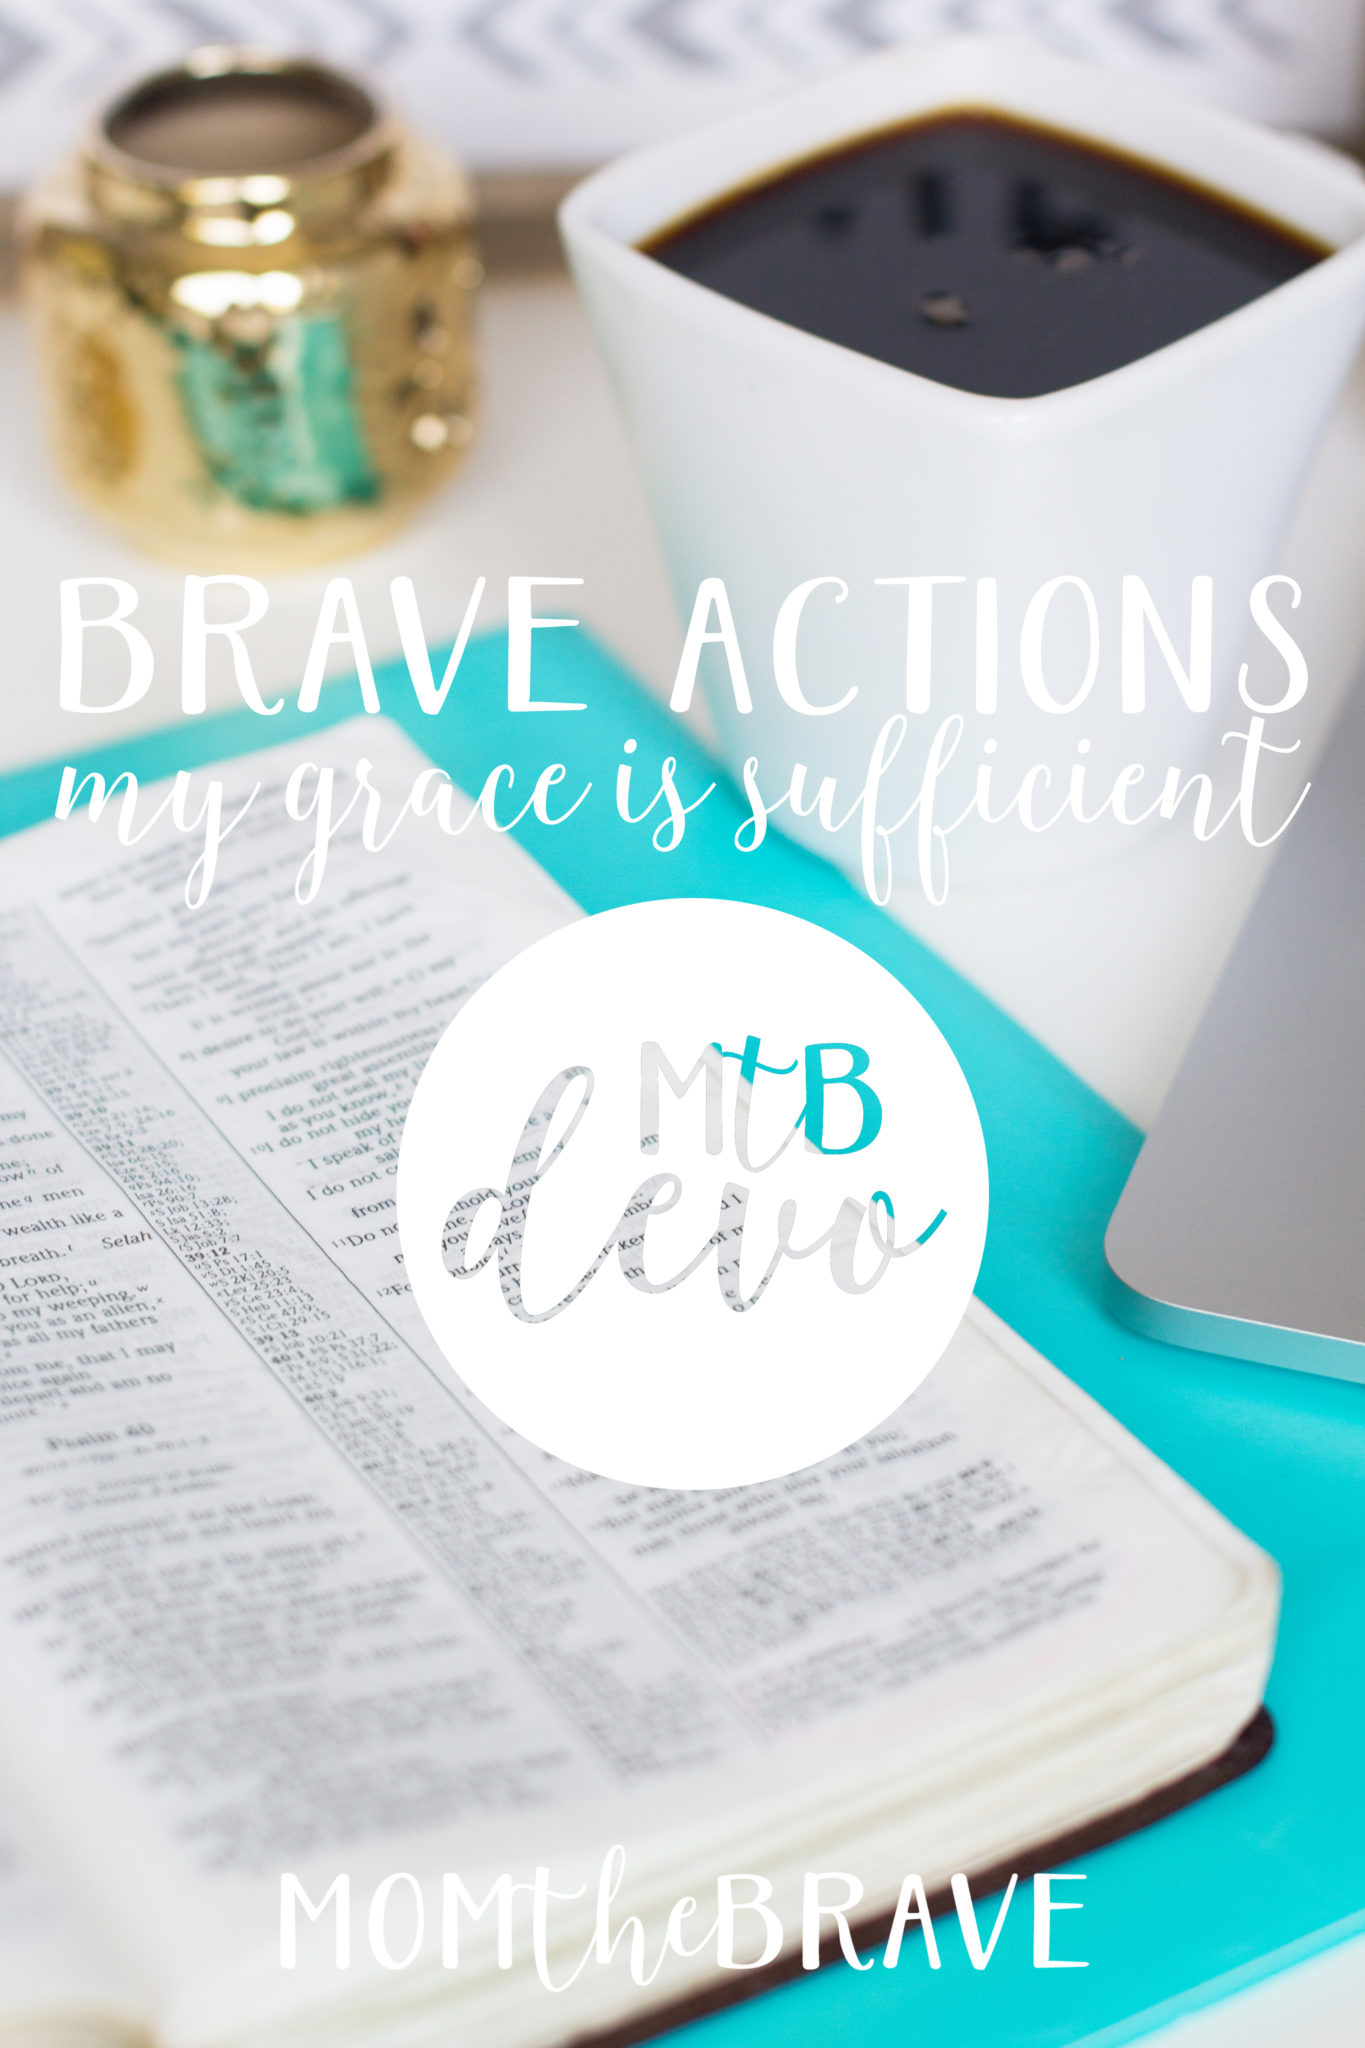 Brave Actions: My Grace is Sufficient